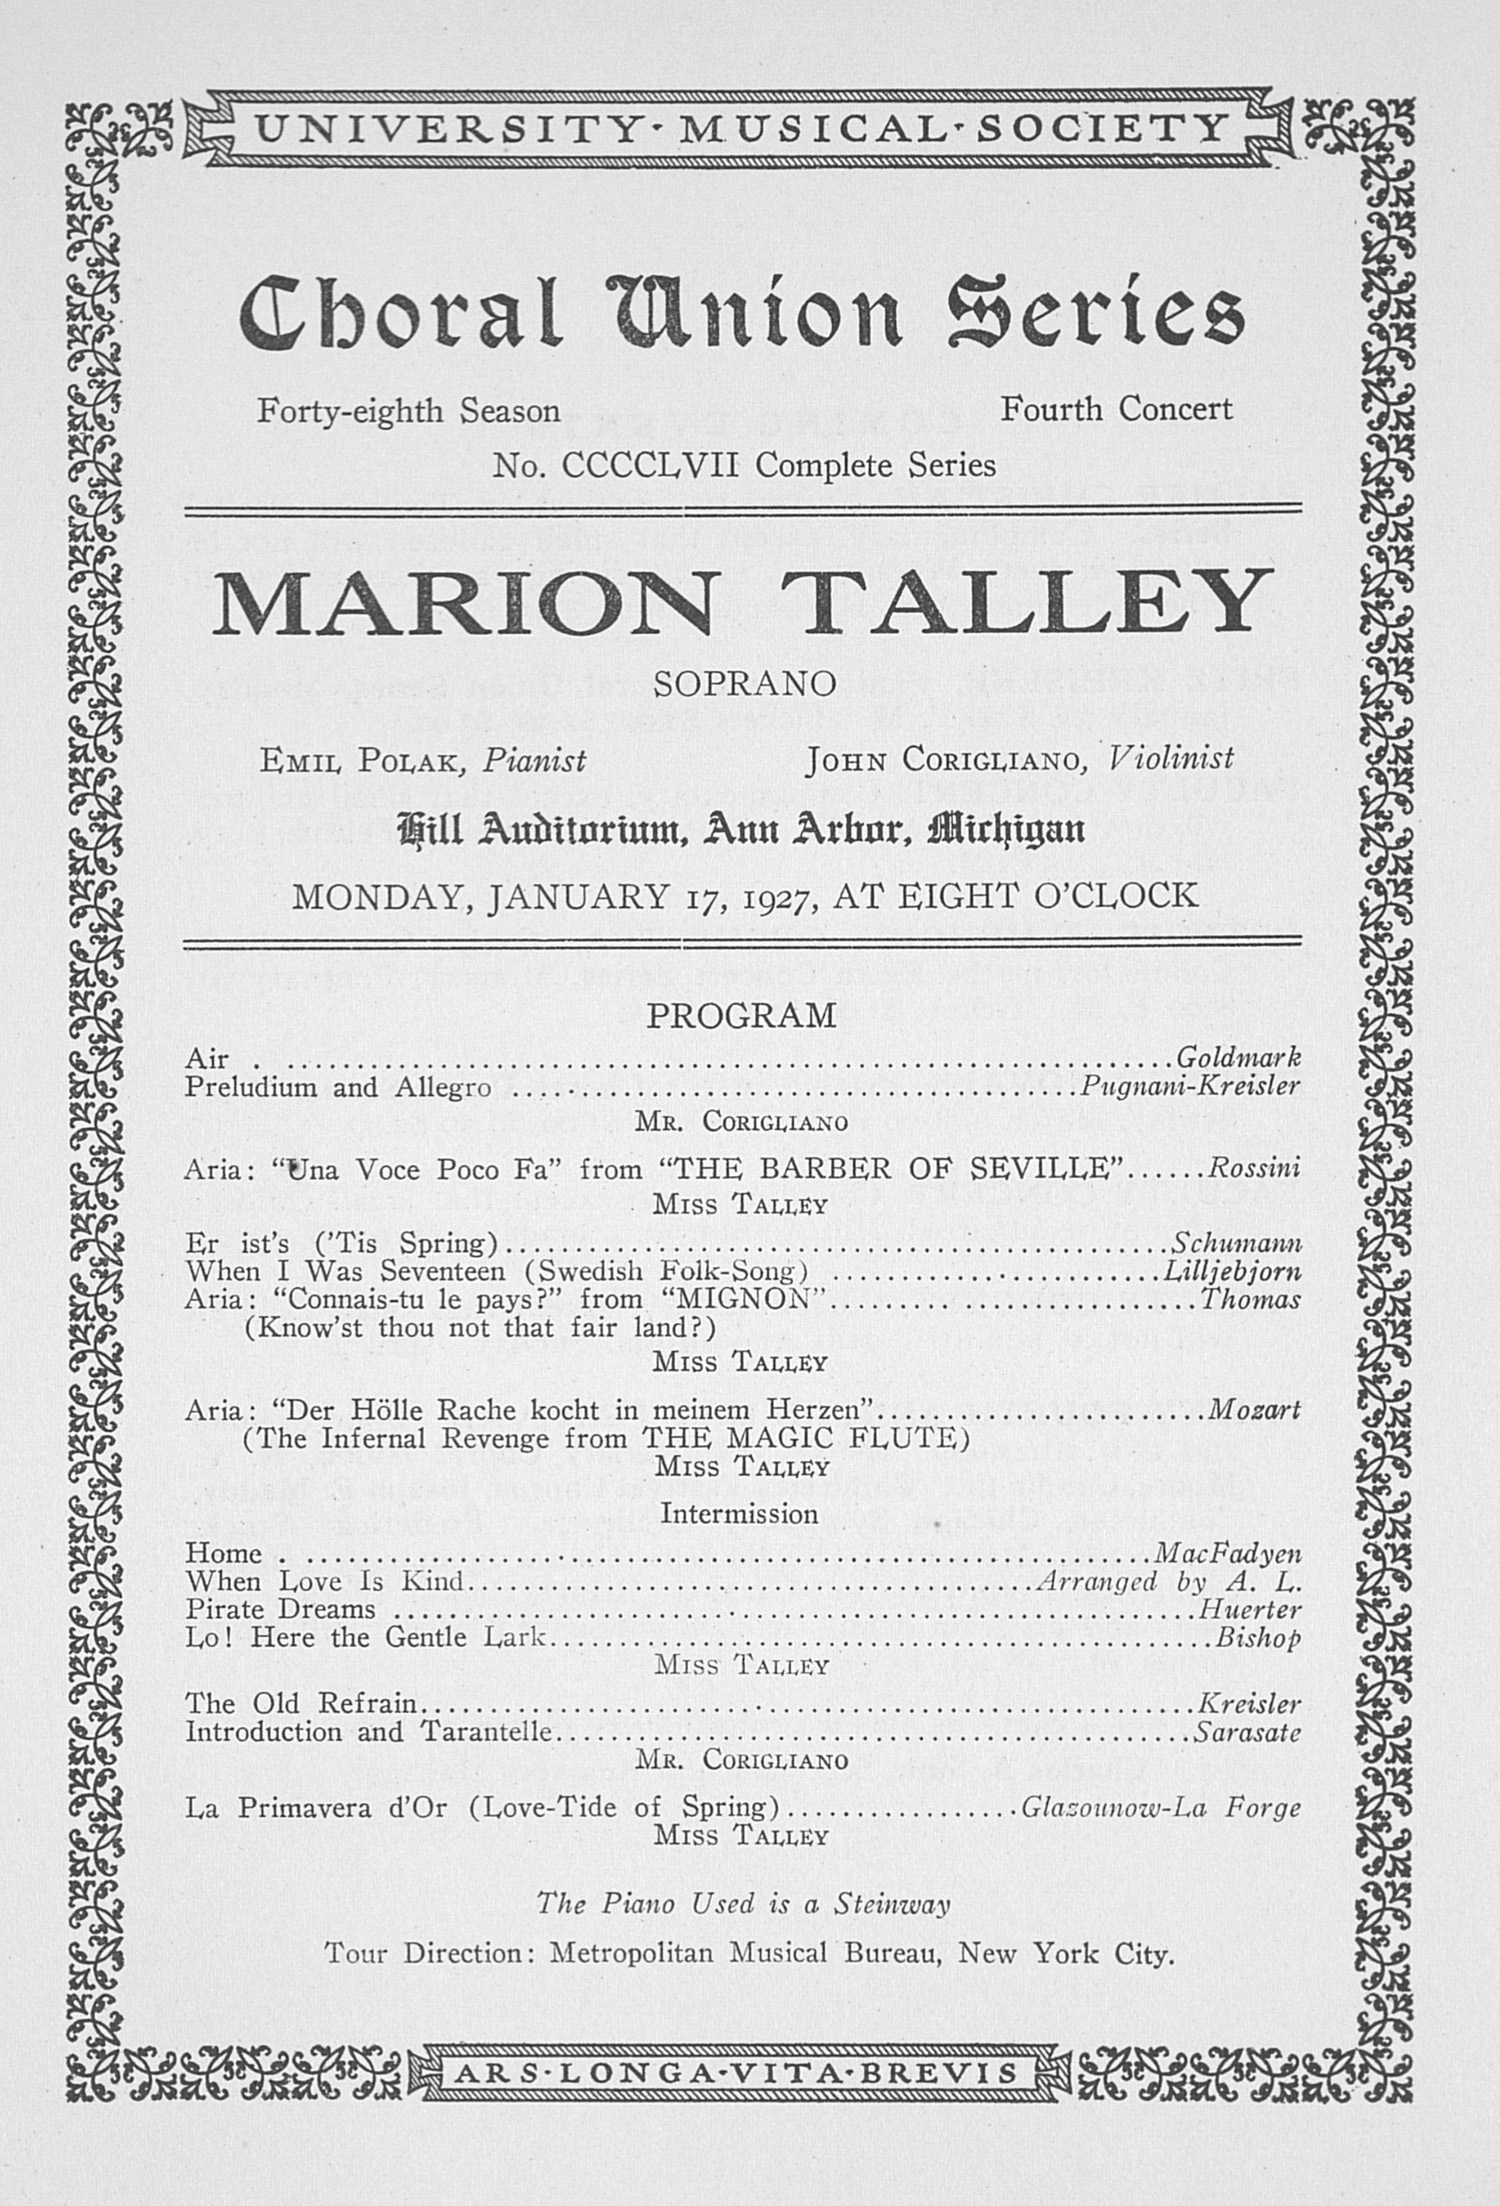 UMS Concert Program, January 17, 1927: Choral Union Series -- Marion Talley image